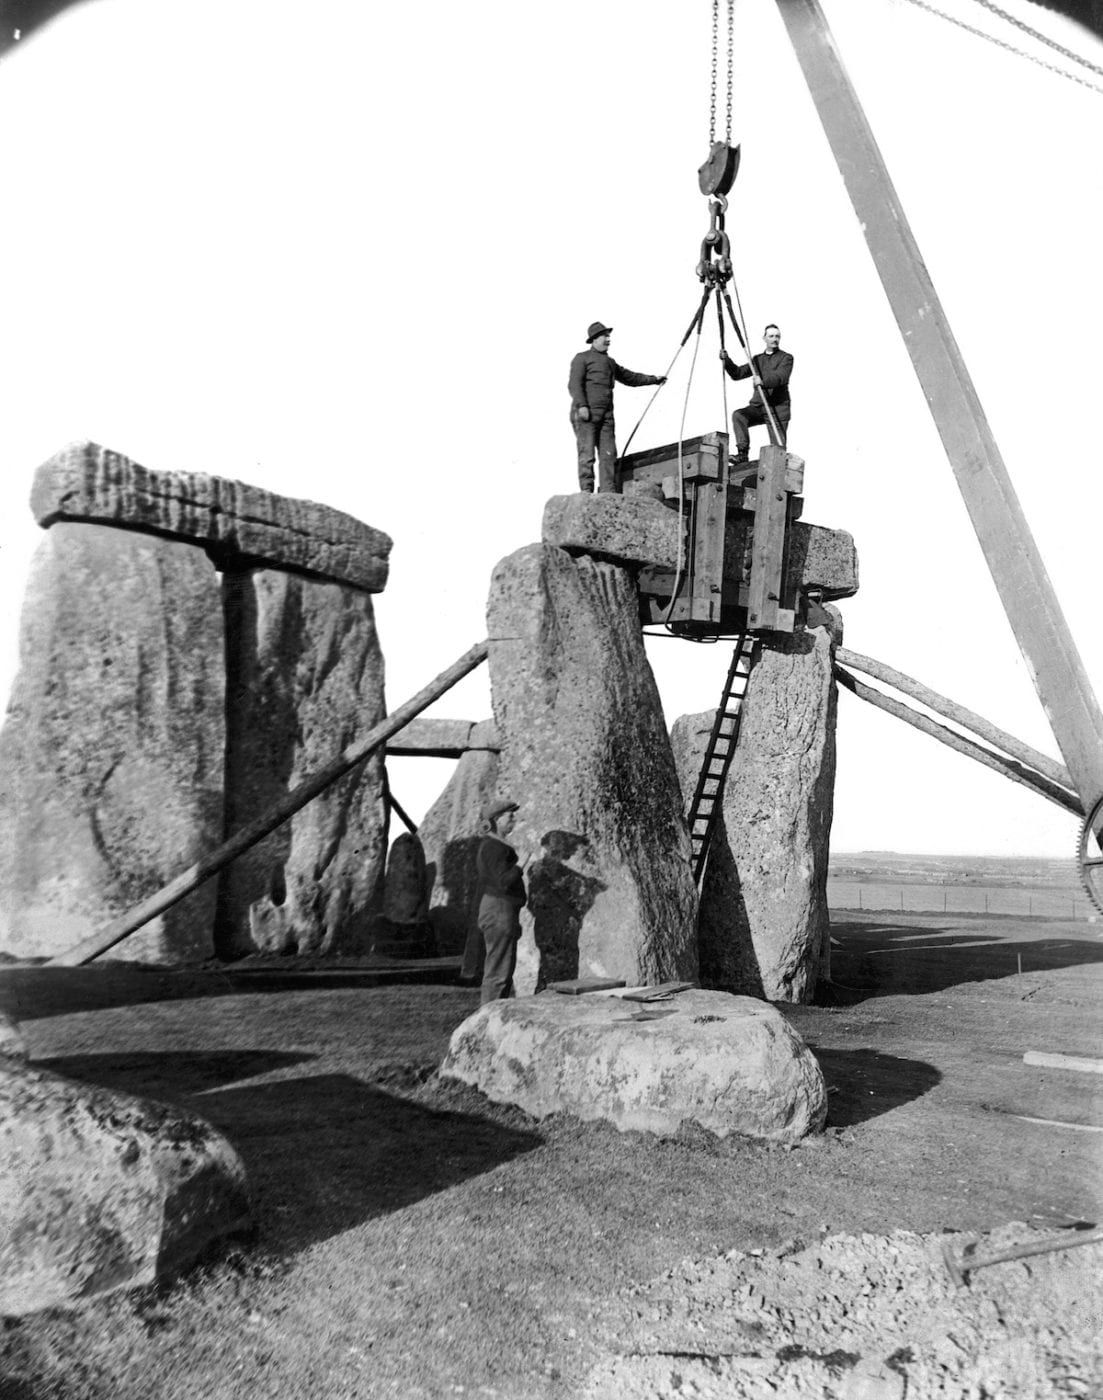 1920 - Excavation and renovation of the Stone Henge monument